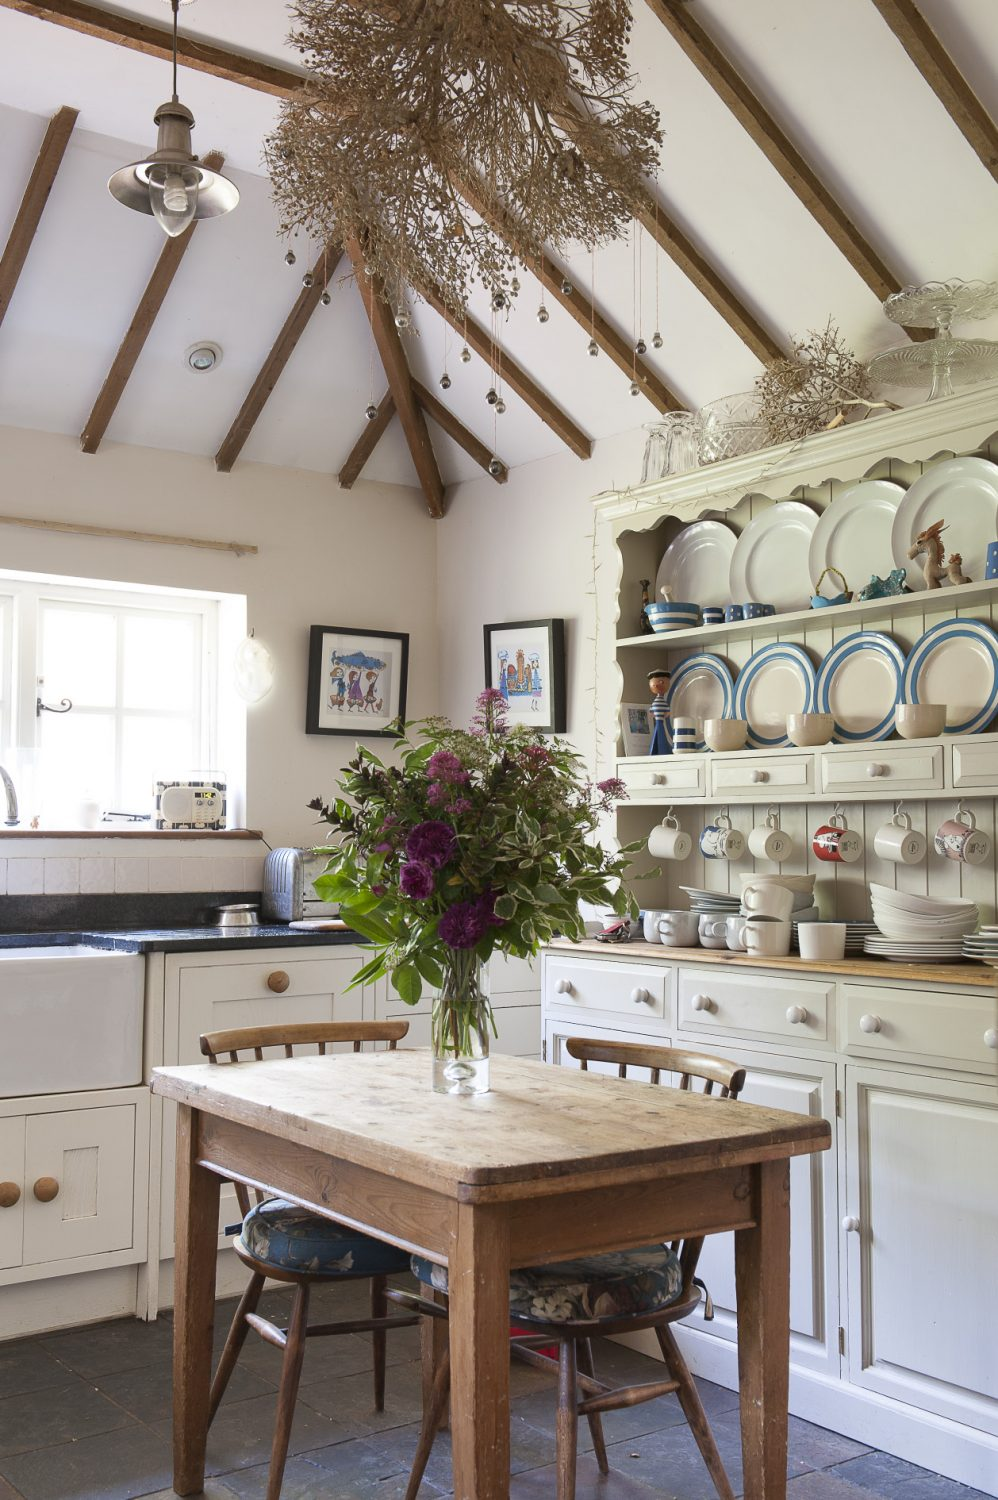 Doors from the dining room lead out into the garden. A dried branch hung with tiny silver baubles forms a quirky chandelier in the high-ceilinged kitchen